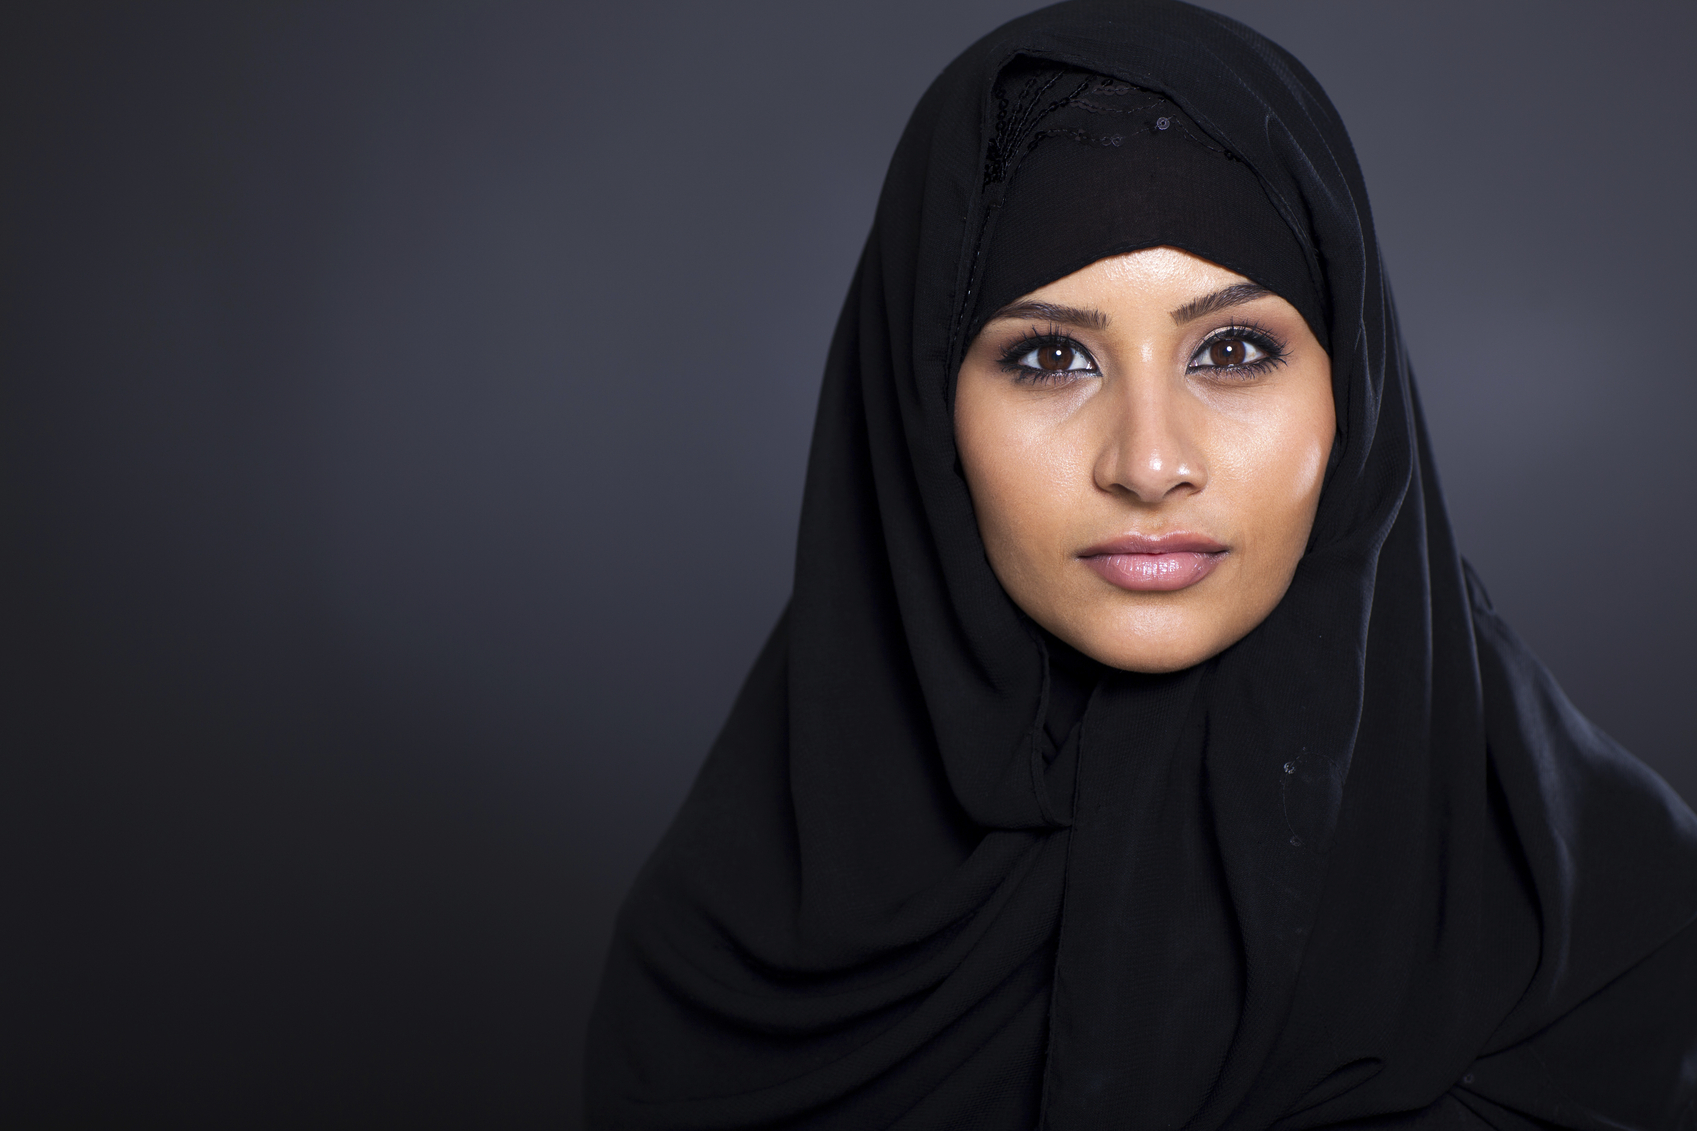 A hijab. picture posed for by model.